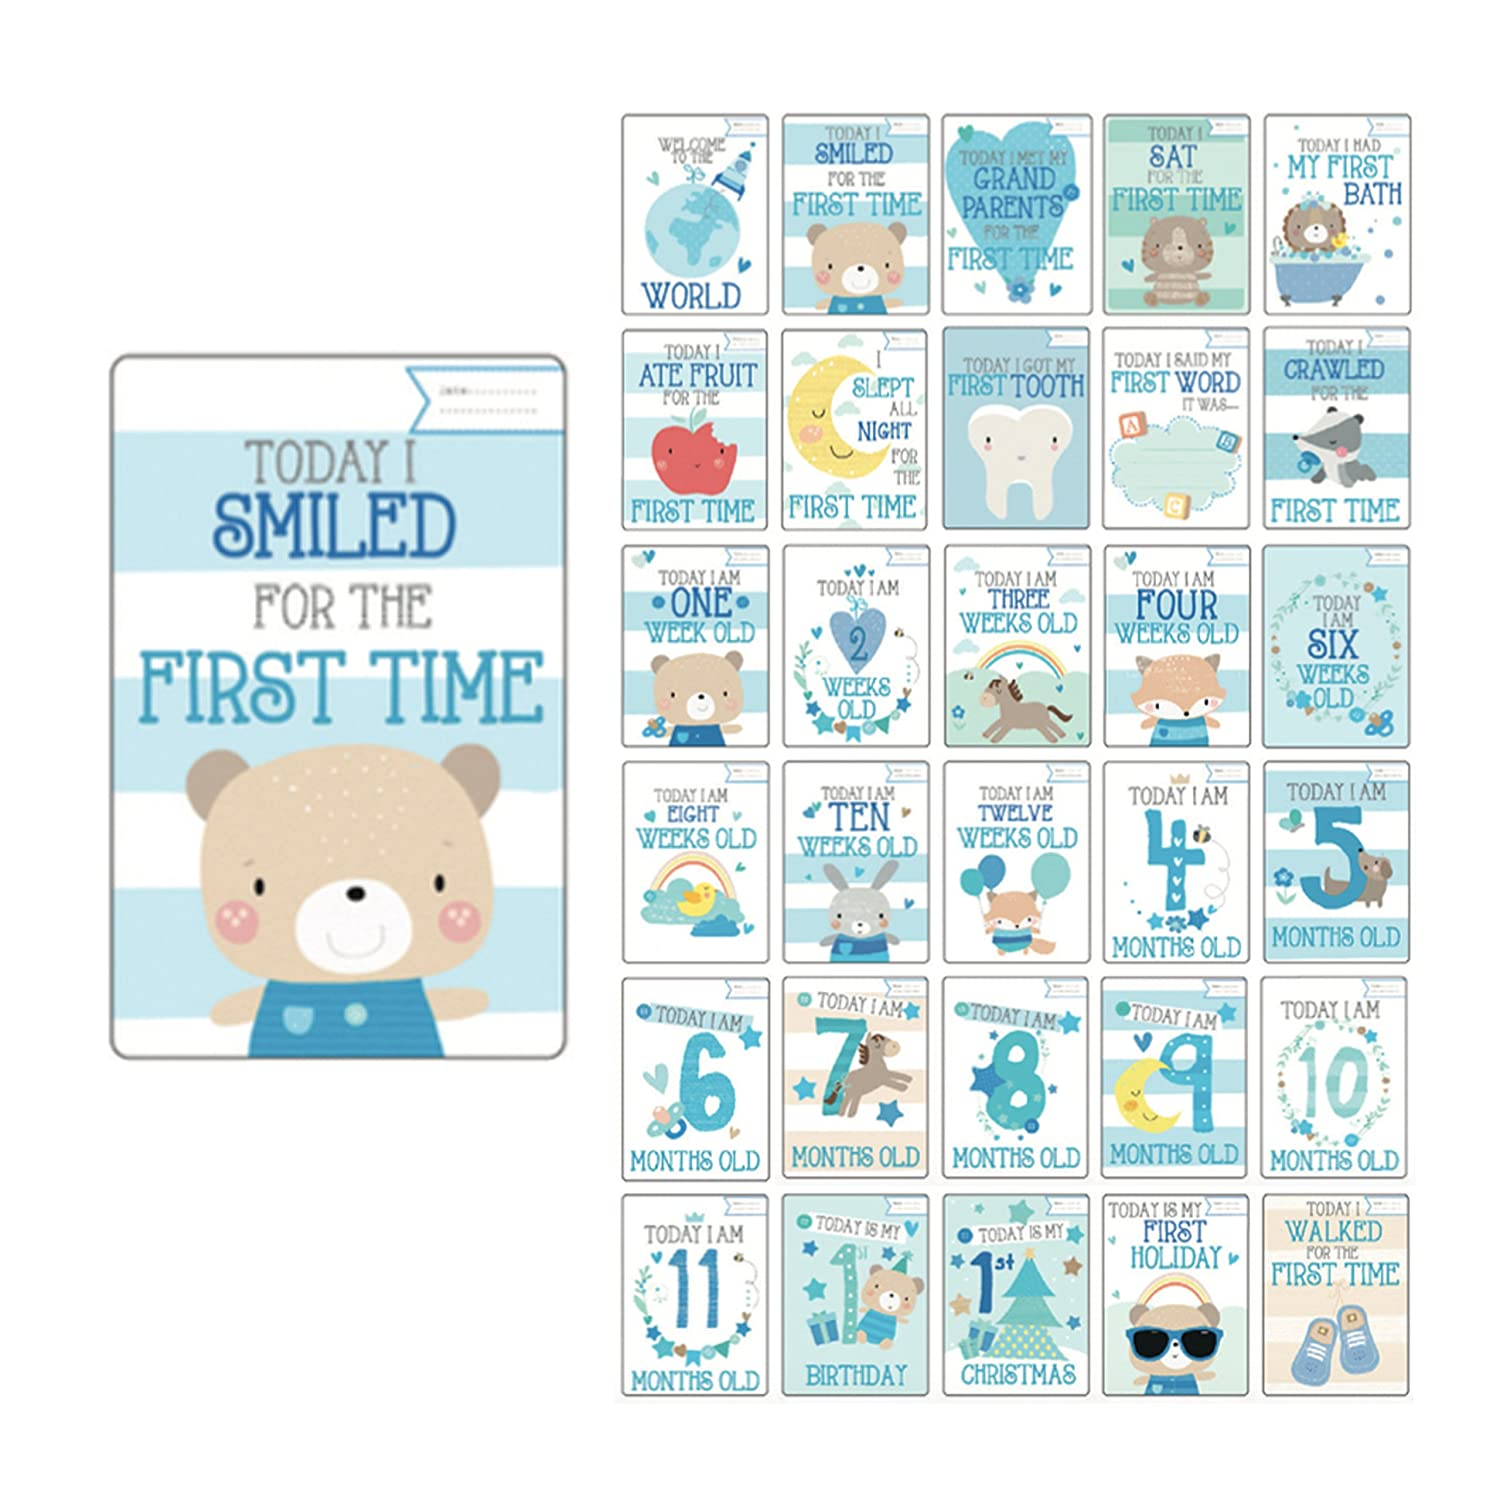 Baby milestone cards uk boy baby shower gifts boy new baby boy baby milestone cards uk boy baby shower gifts boy new baby boy gifts amazon baby negle Image collections